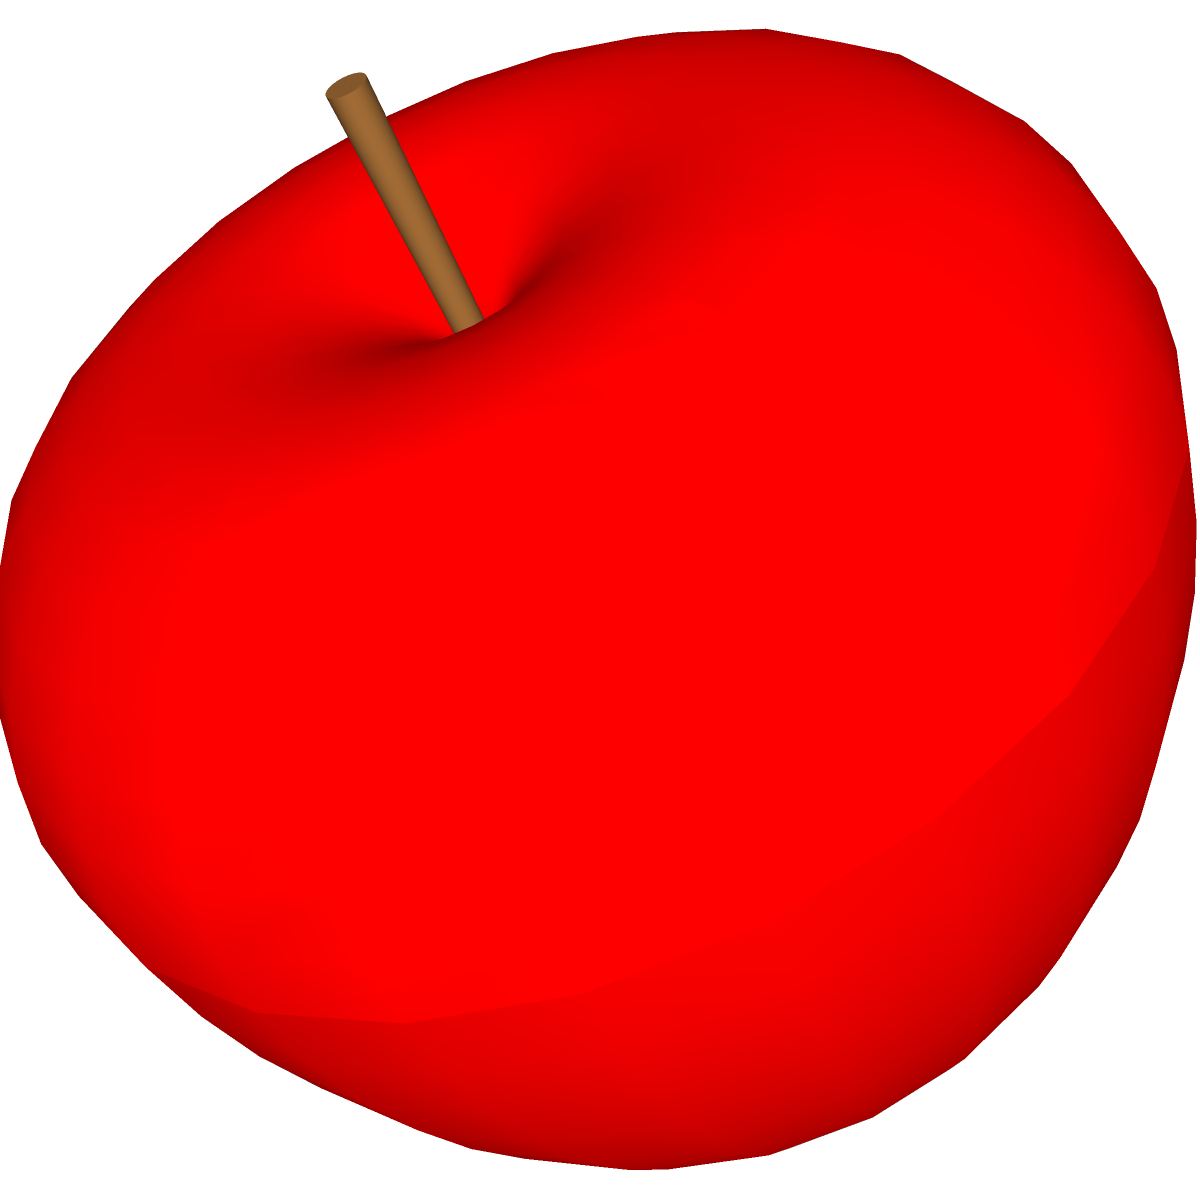 Red Apple Images.